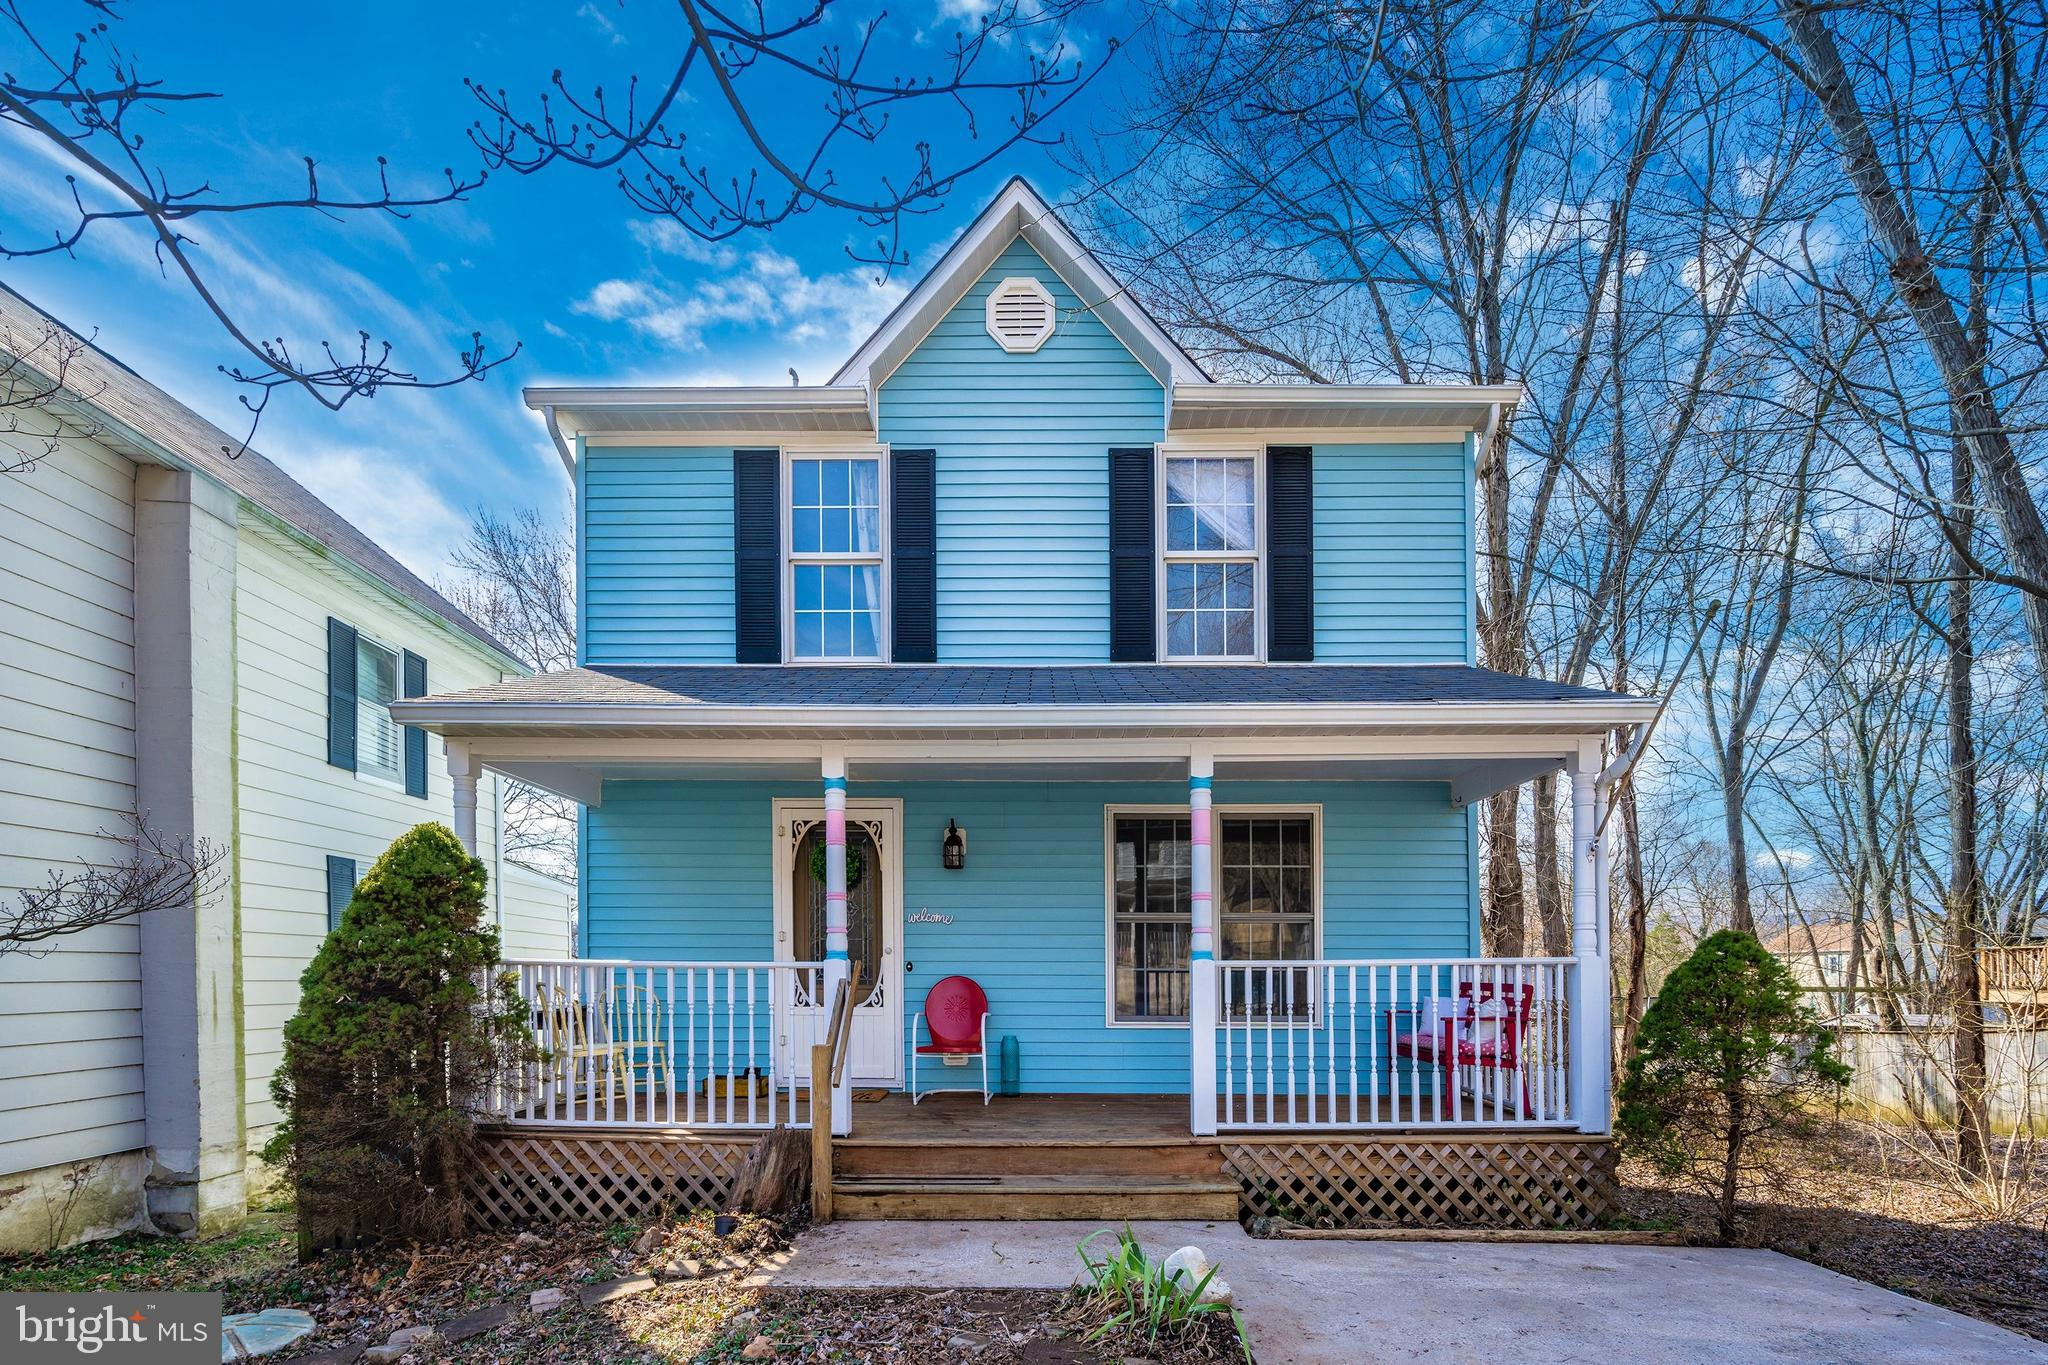 817 TRITAPOE DRIVE, KNOXVILLE, MD 21758